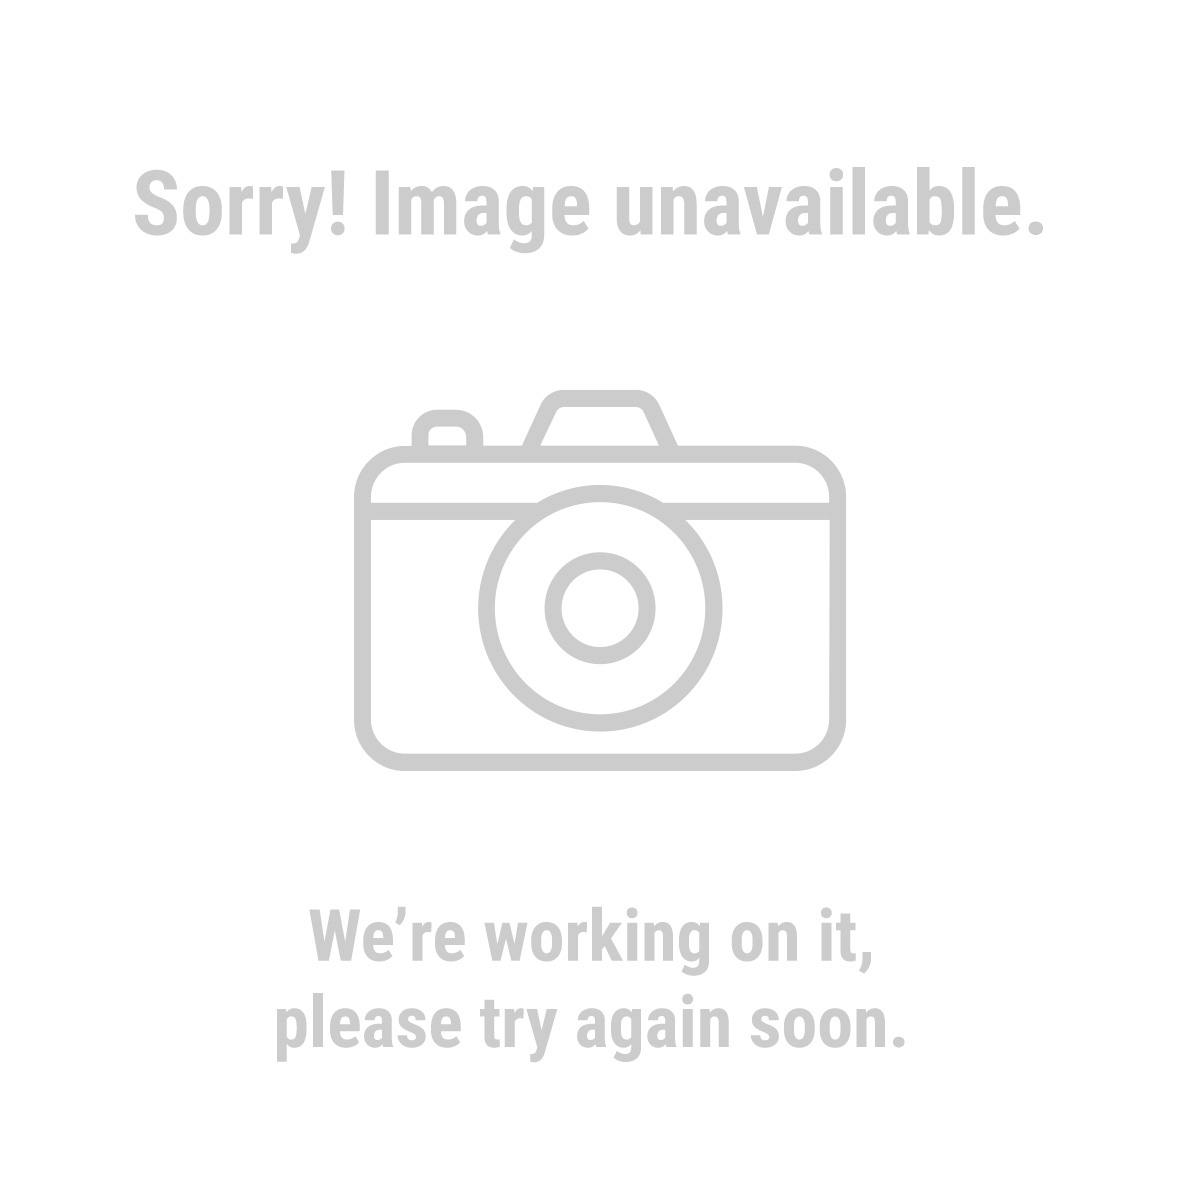 Chicago Electric Power Tools 98328 Tile Saw Stand with Wheels